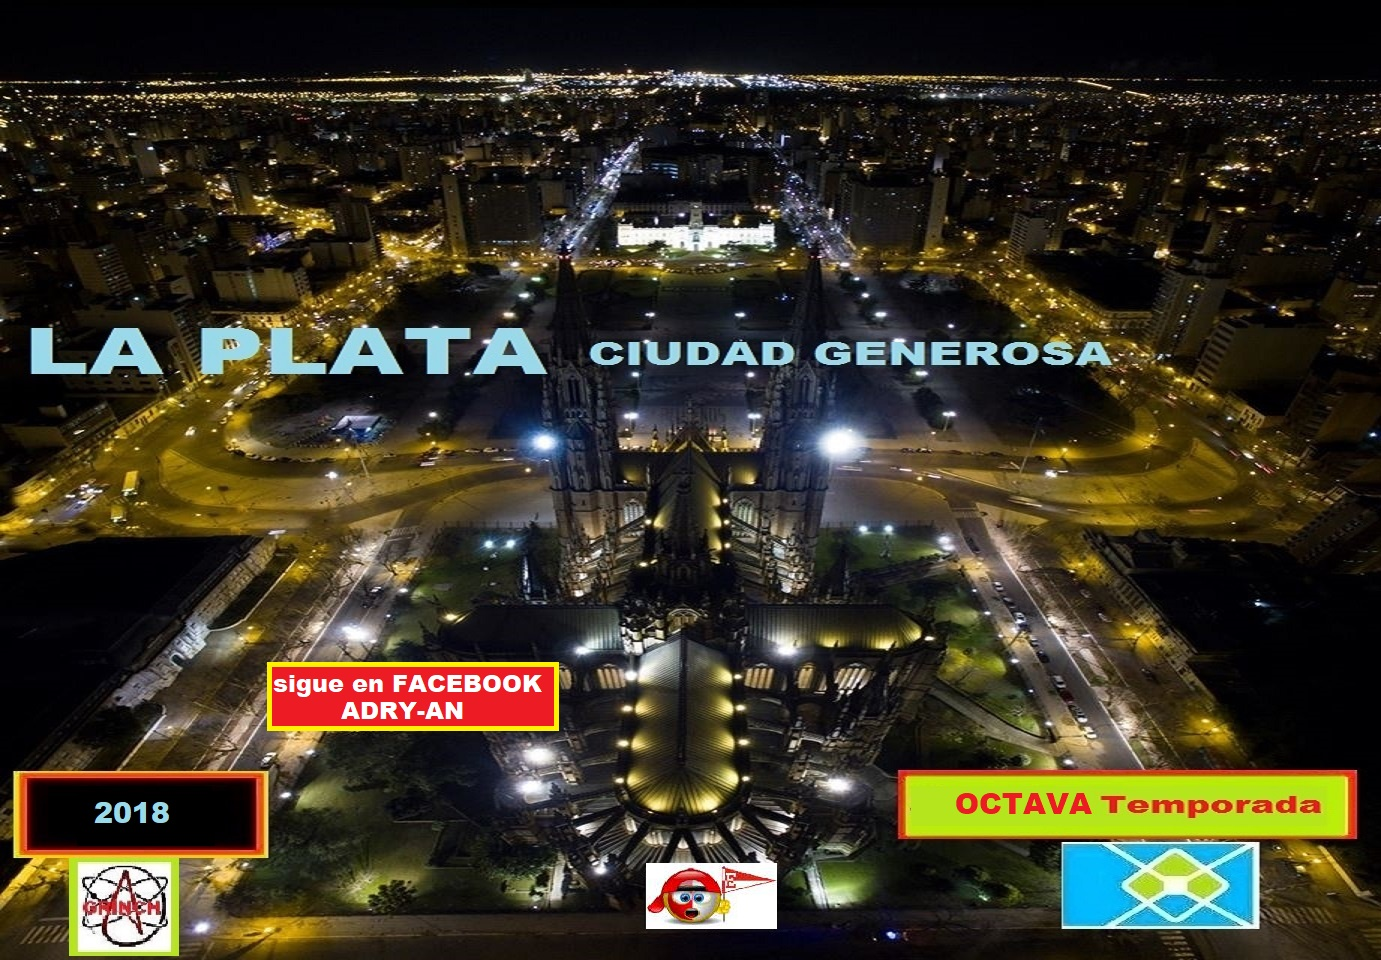 La Plata, Ciudad Generosa